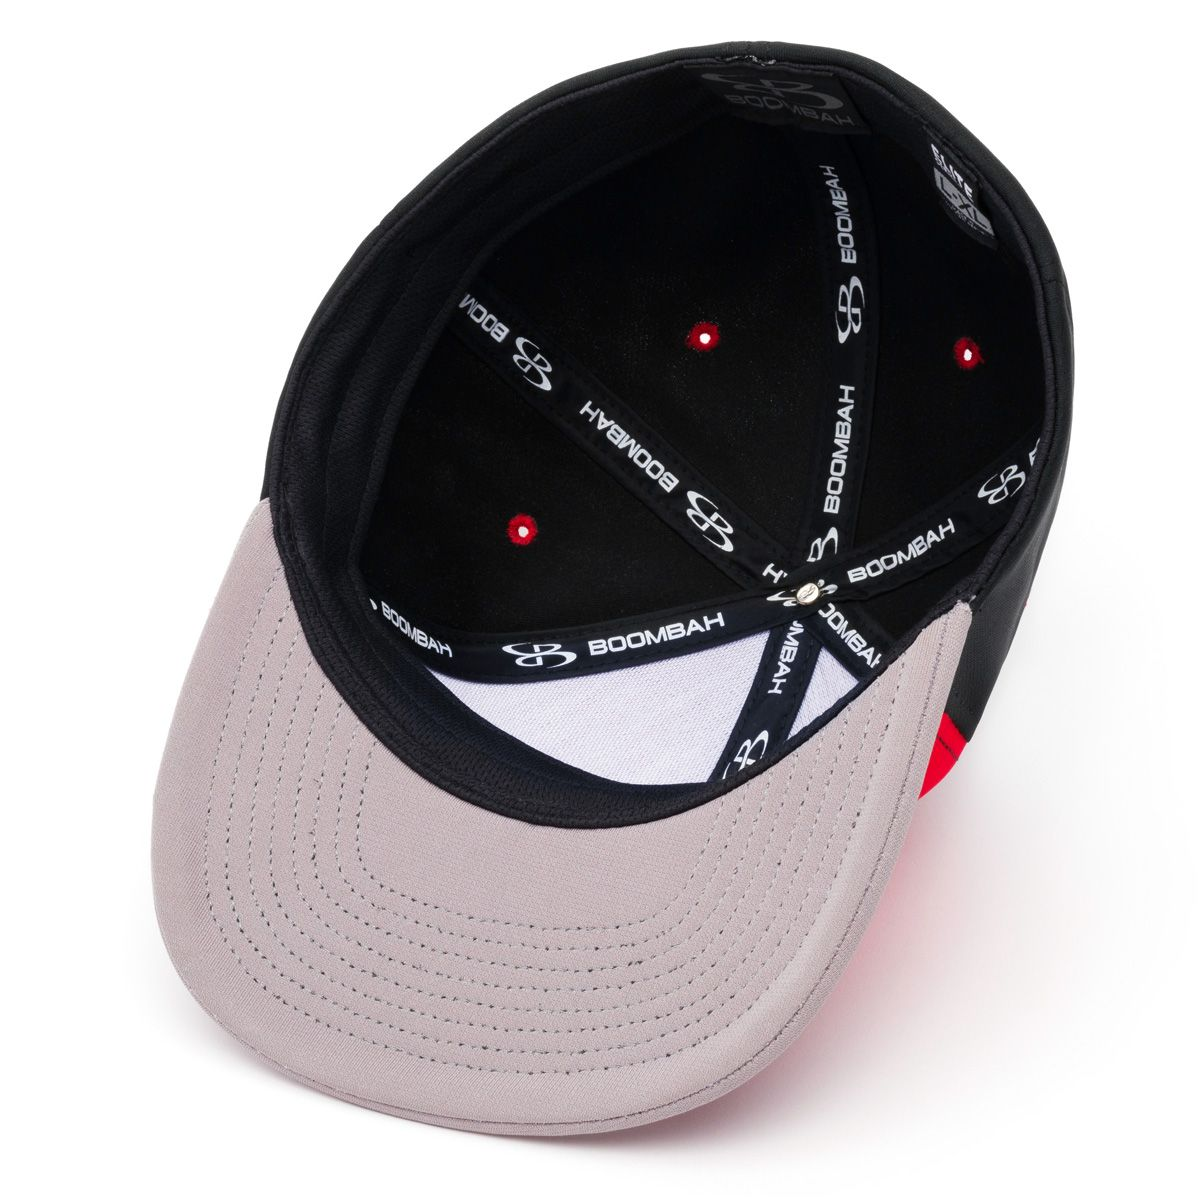 custom embroidered hat perfect fit